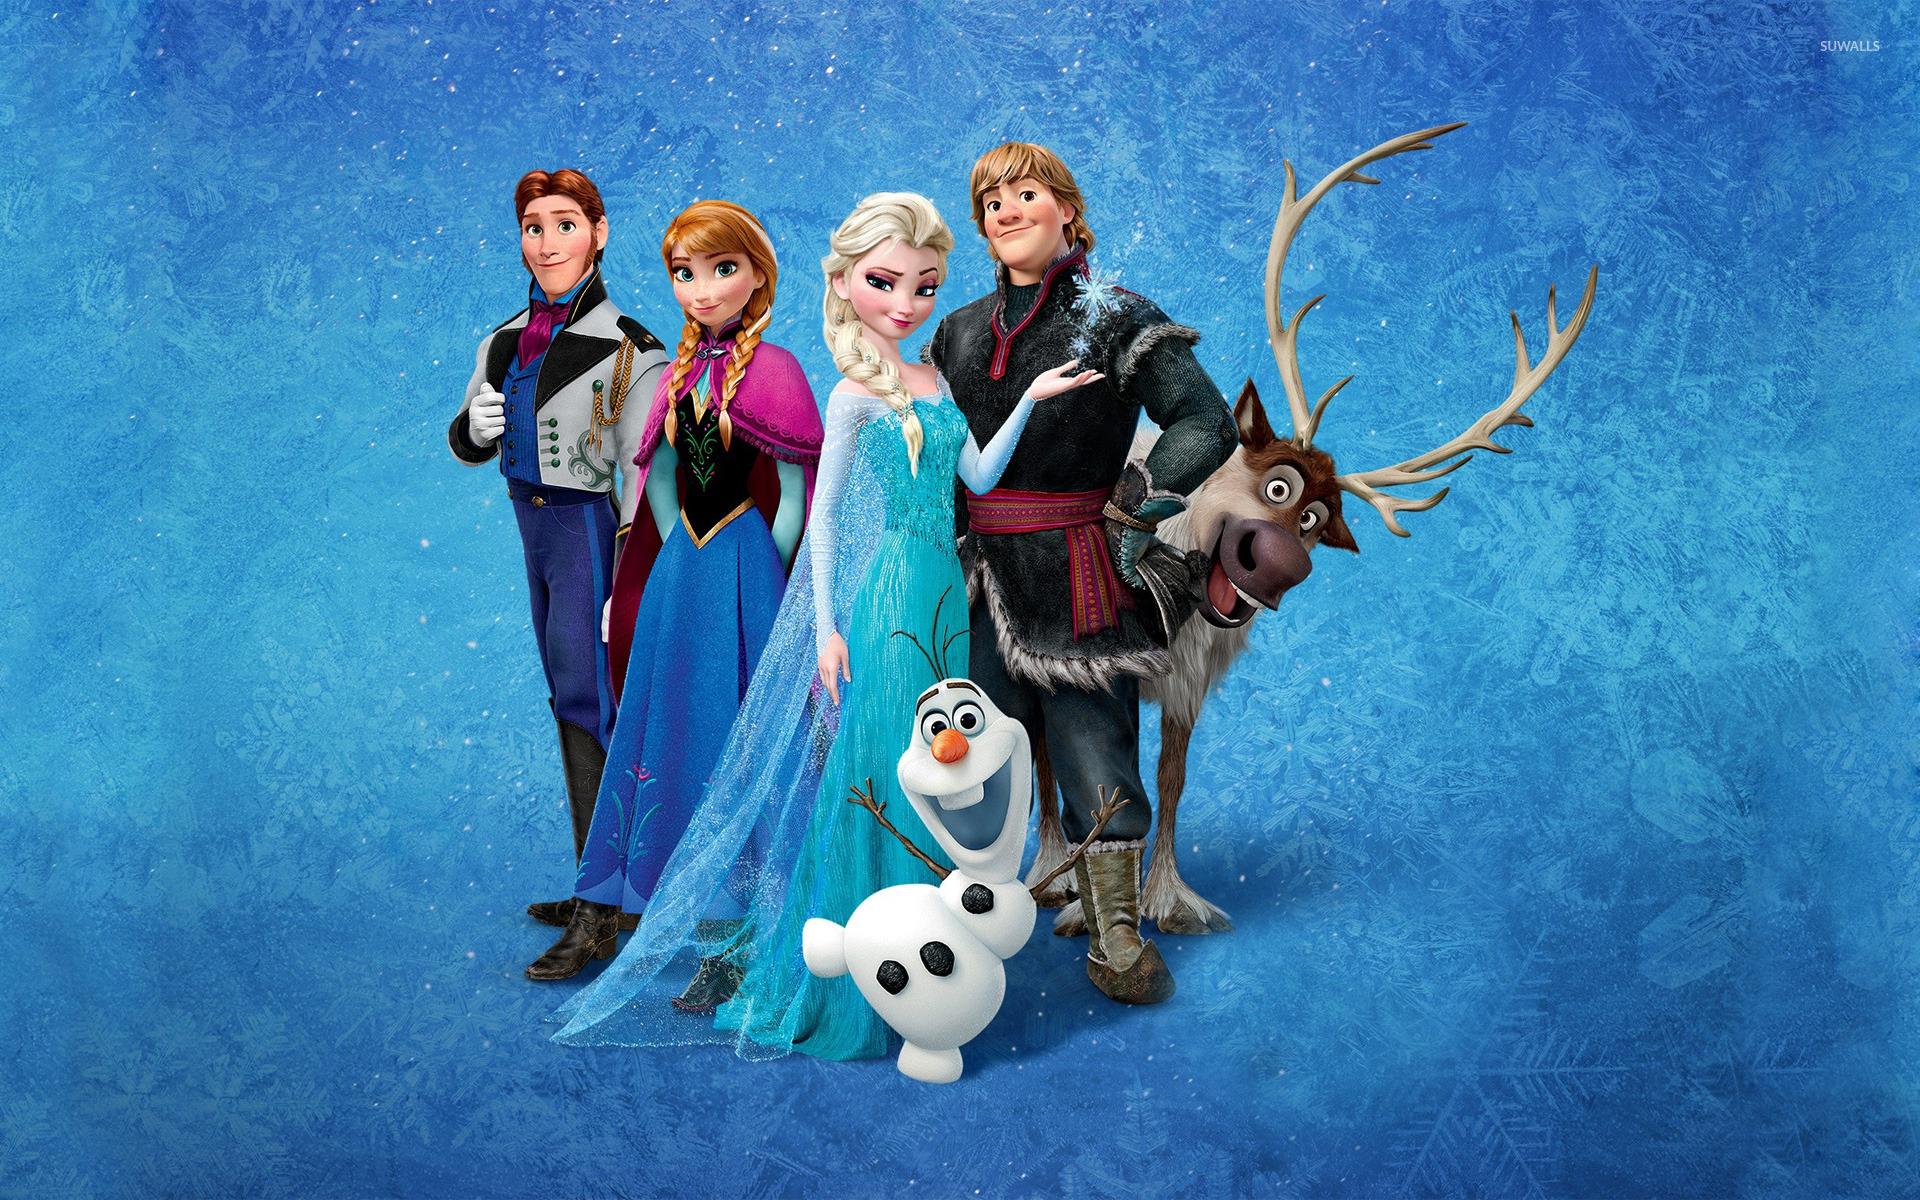 Frozen wallpaper   Cartoon wallpapers   25491 1920x1200